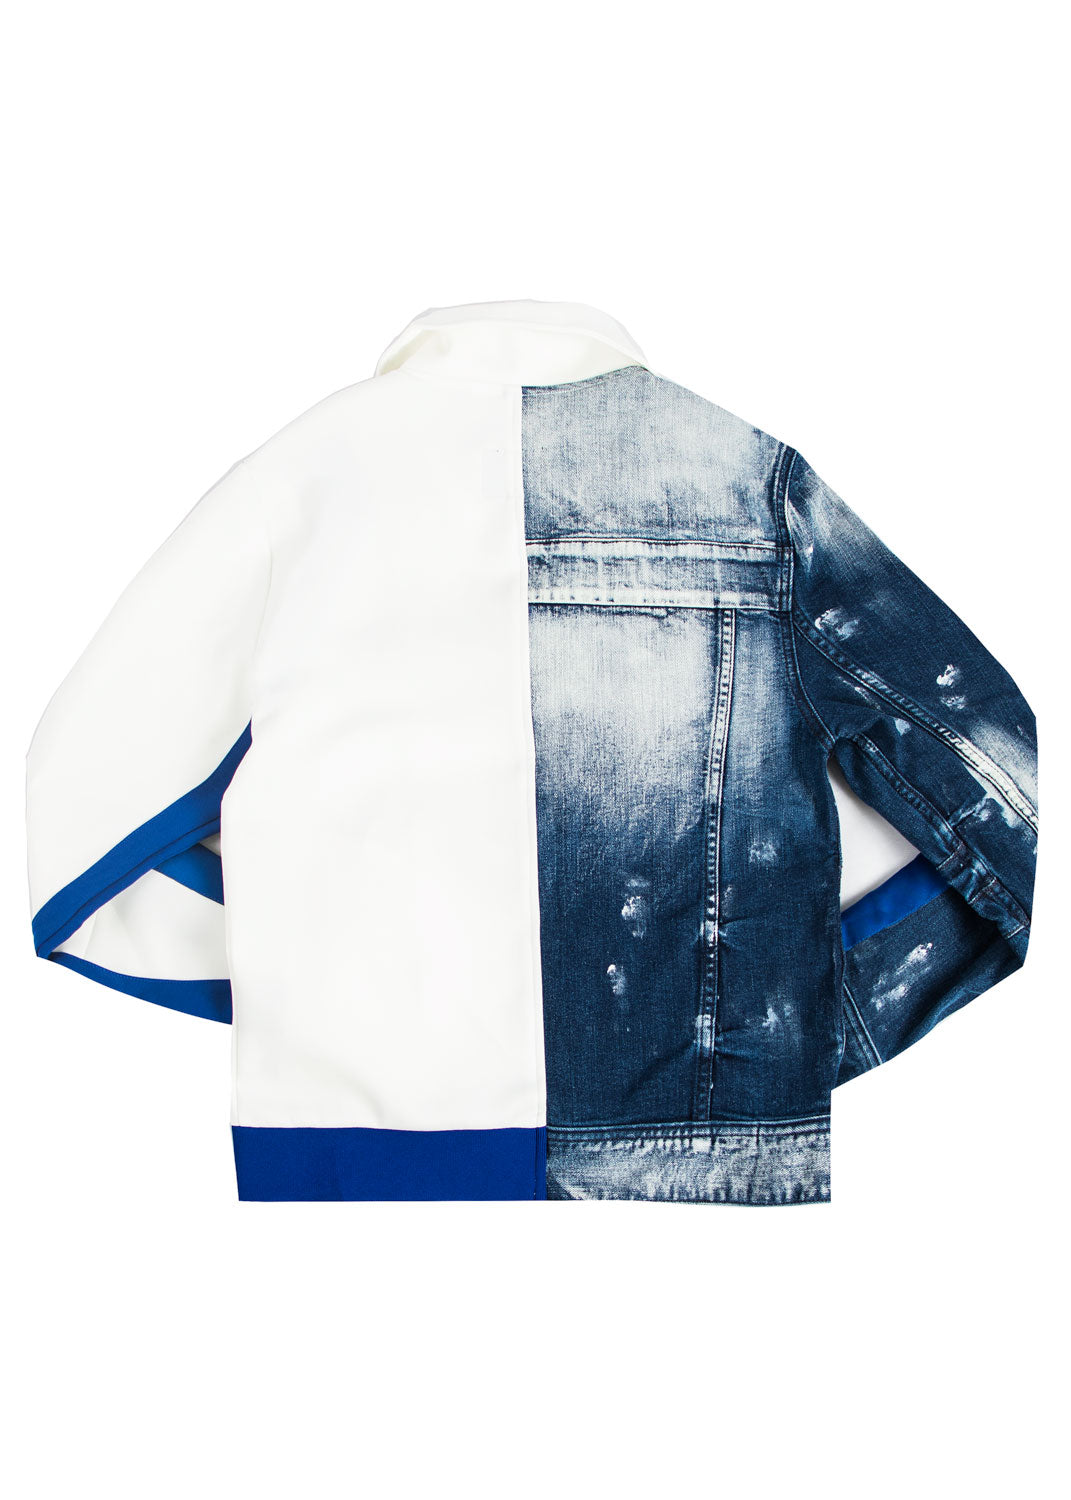 Yatchy Jacket (Blue)